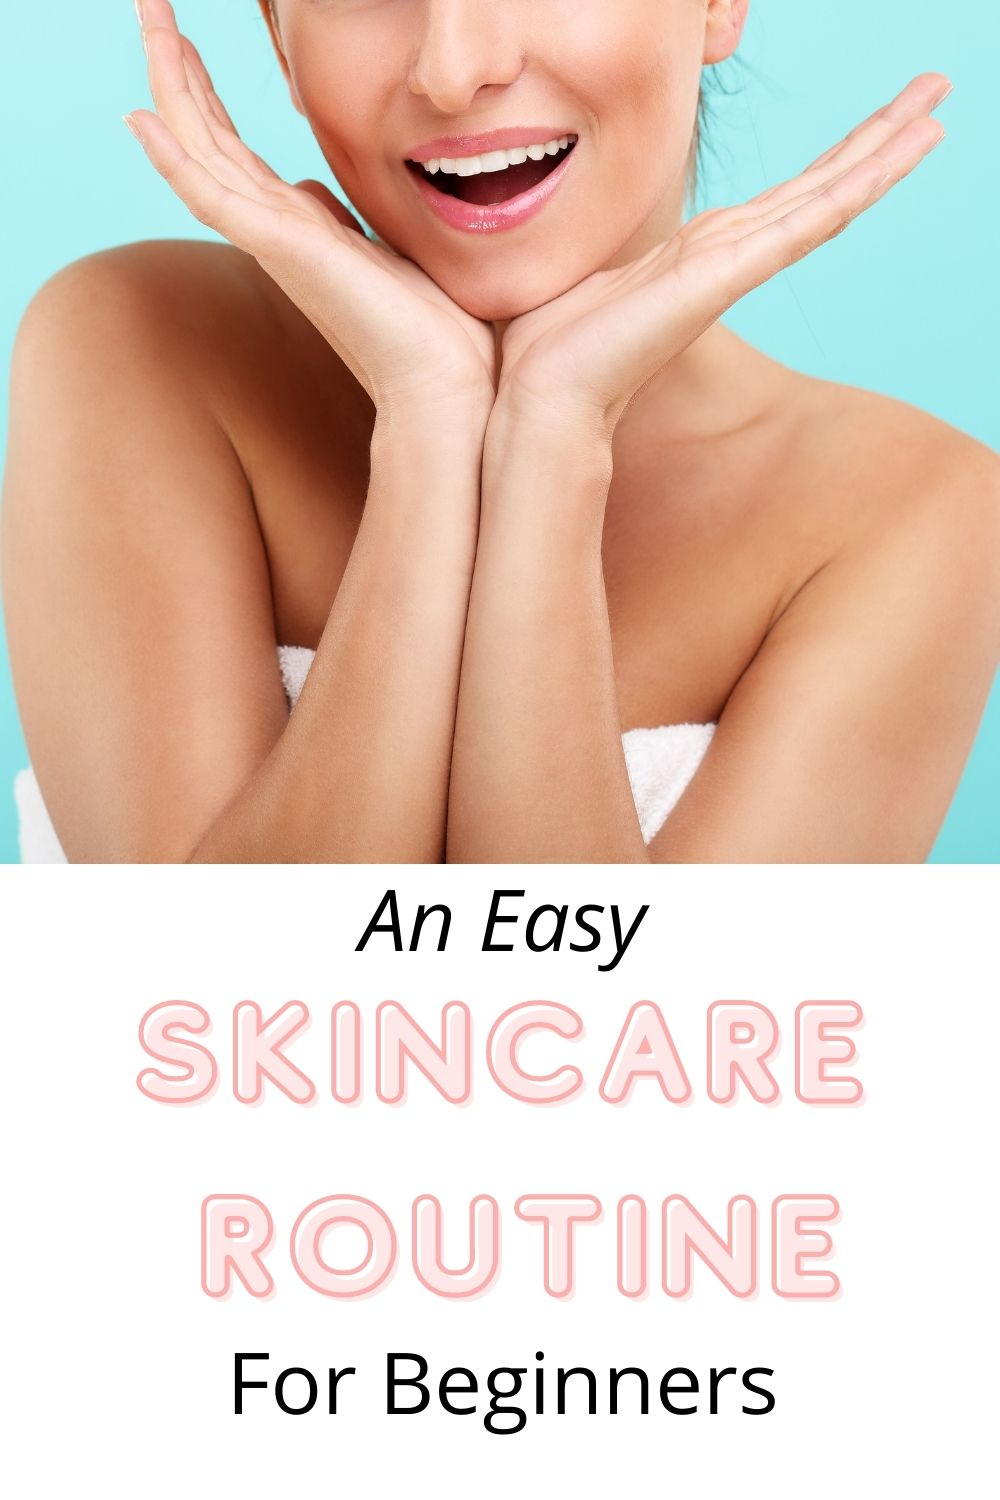 Skincare Routine For Beginners